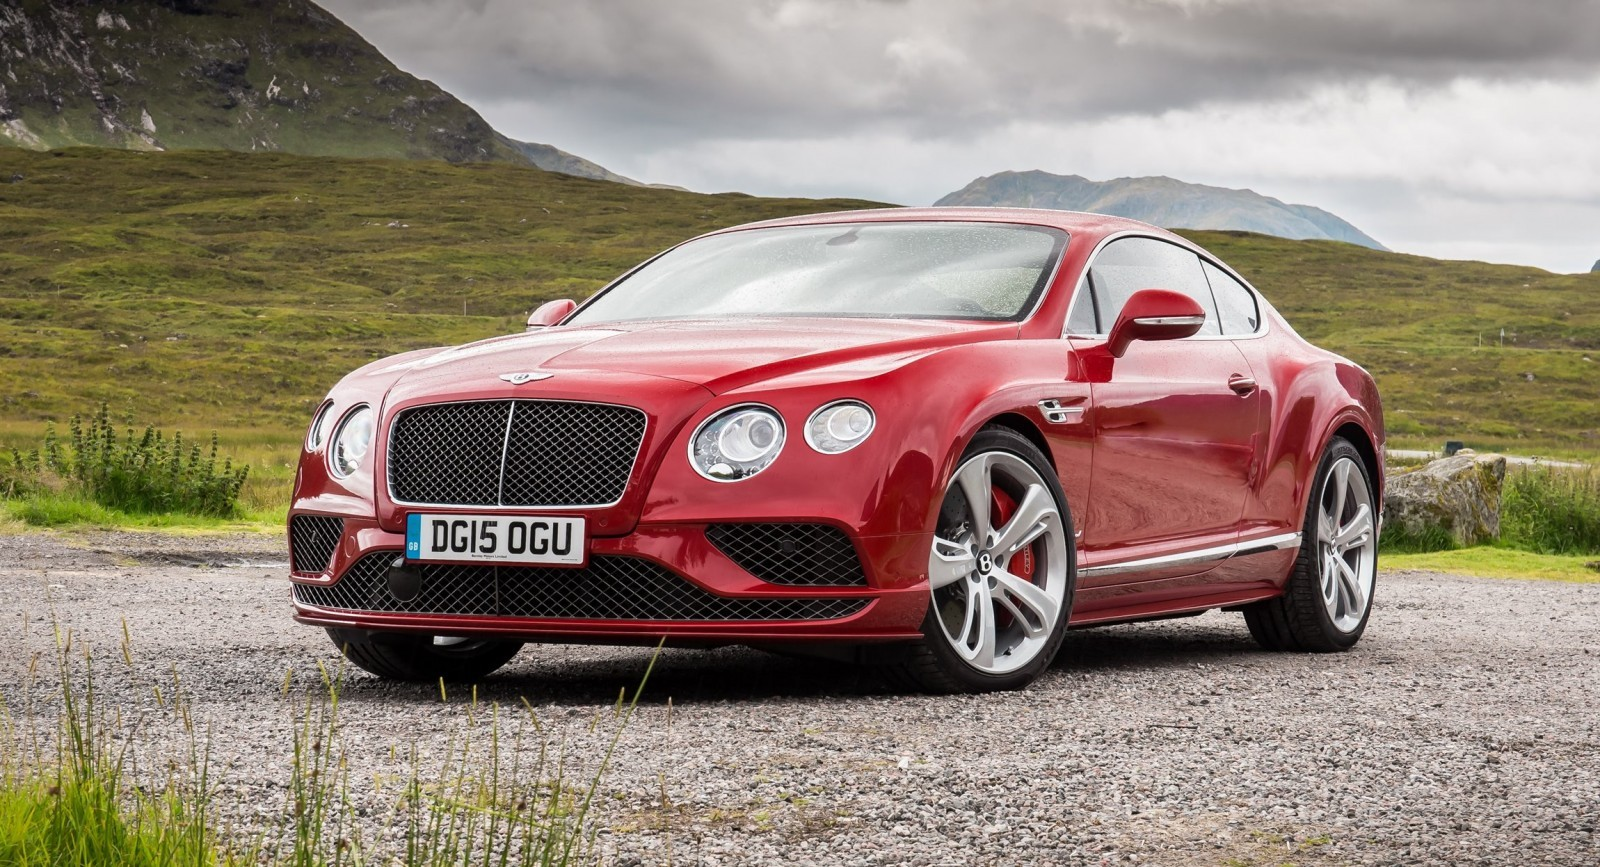 2016 Bentley Continental GT SPEED Proves Its 206MPH Vmax